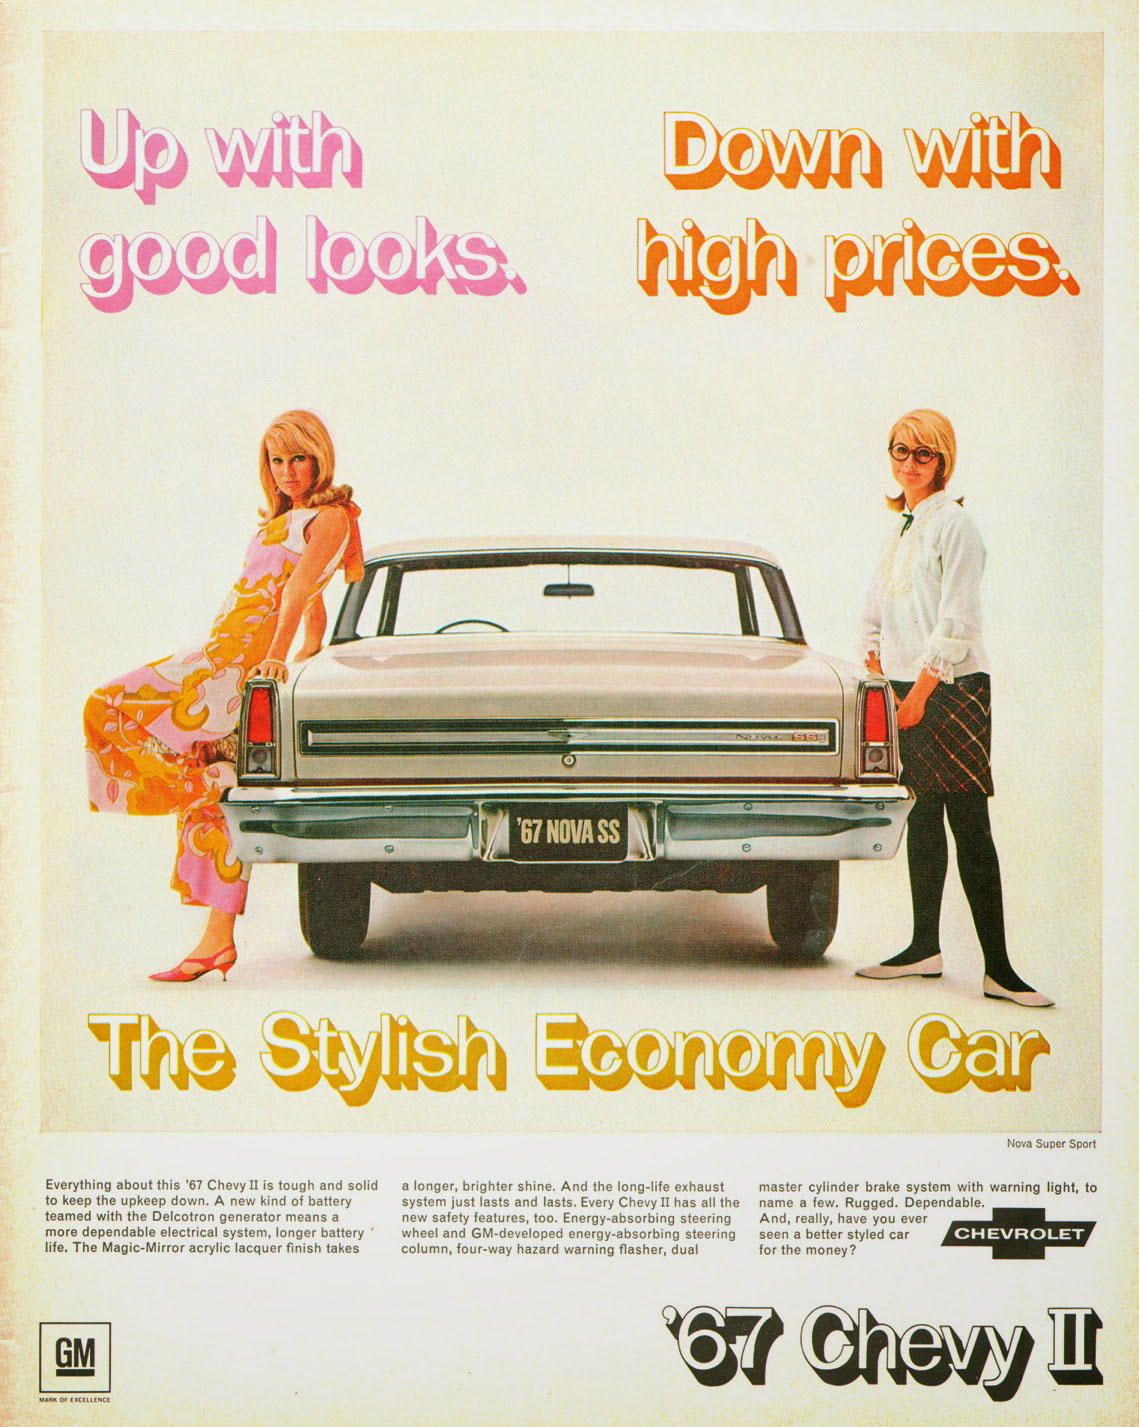 Up with good looks. Down with high prices. The 1967 Chevrolet II Nova Super Sport. The stylish economy car. Nova Super Sport  Everything about this '67 Chevy II is tough and solid a longer, brighter shine. And the long-life exhaust master cylinder brake system with warning light, to to keep the upkeep down. A new kind of battery system just lasts and lasts. Every Chevy II has all the name a few. Rugged. Dependable. teamed with the Delcotron generator means a new safety features, too. Energy-absorbing steering And, really, have you ever more dependable electrical system, longer battery wheel and GM-developed energy-absorbing steering seen a better styled car life. The Magic-Mirror acrylic lacquer finish takes column, four-way hazard warning flasher, dual for the money?  GM  CHEVROLET